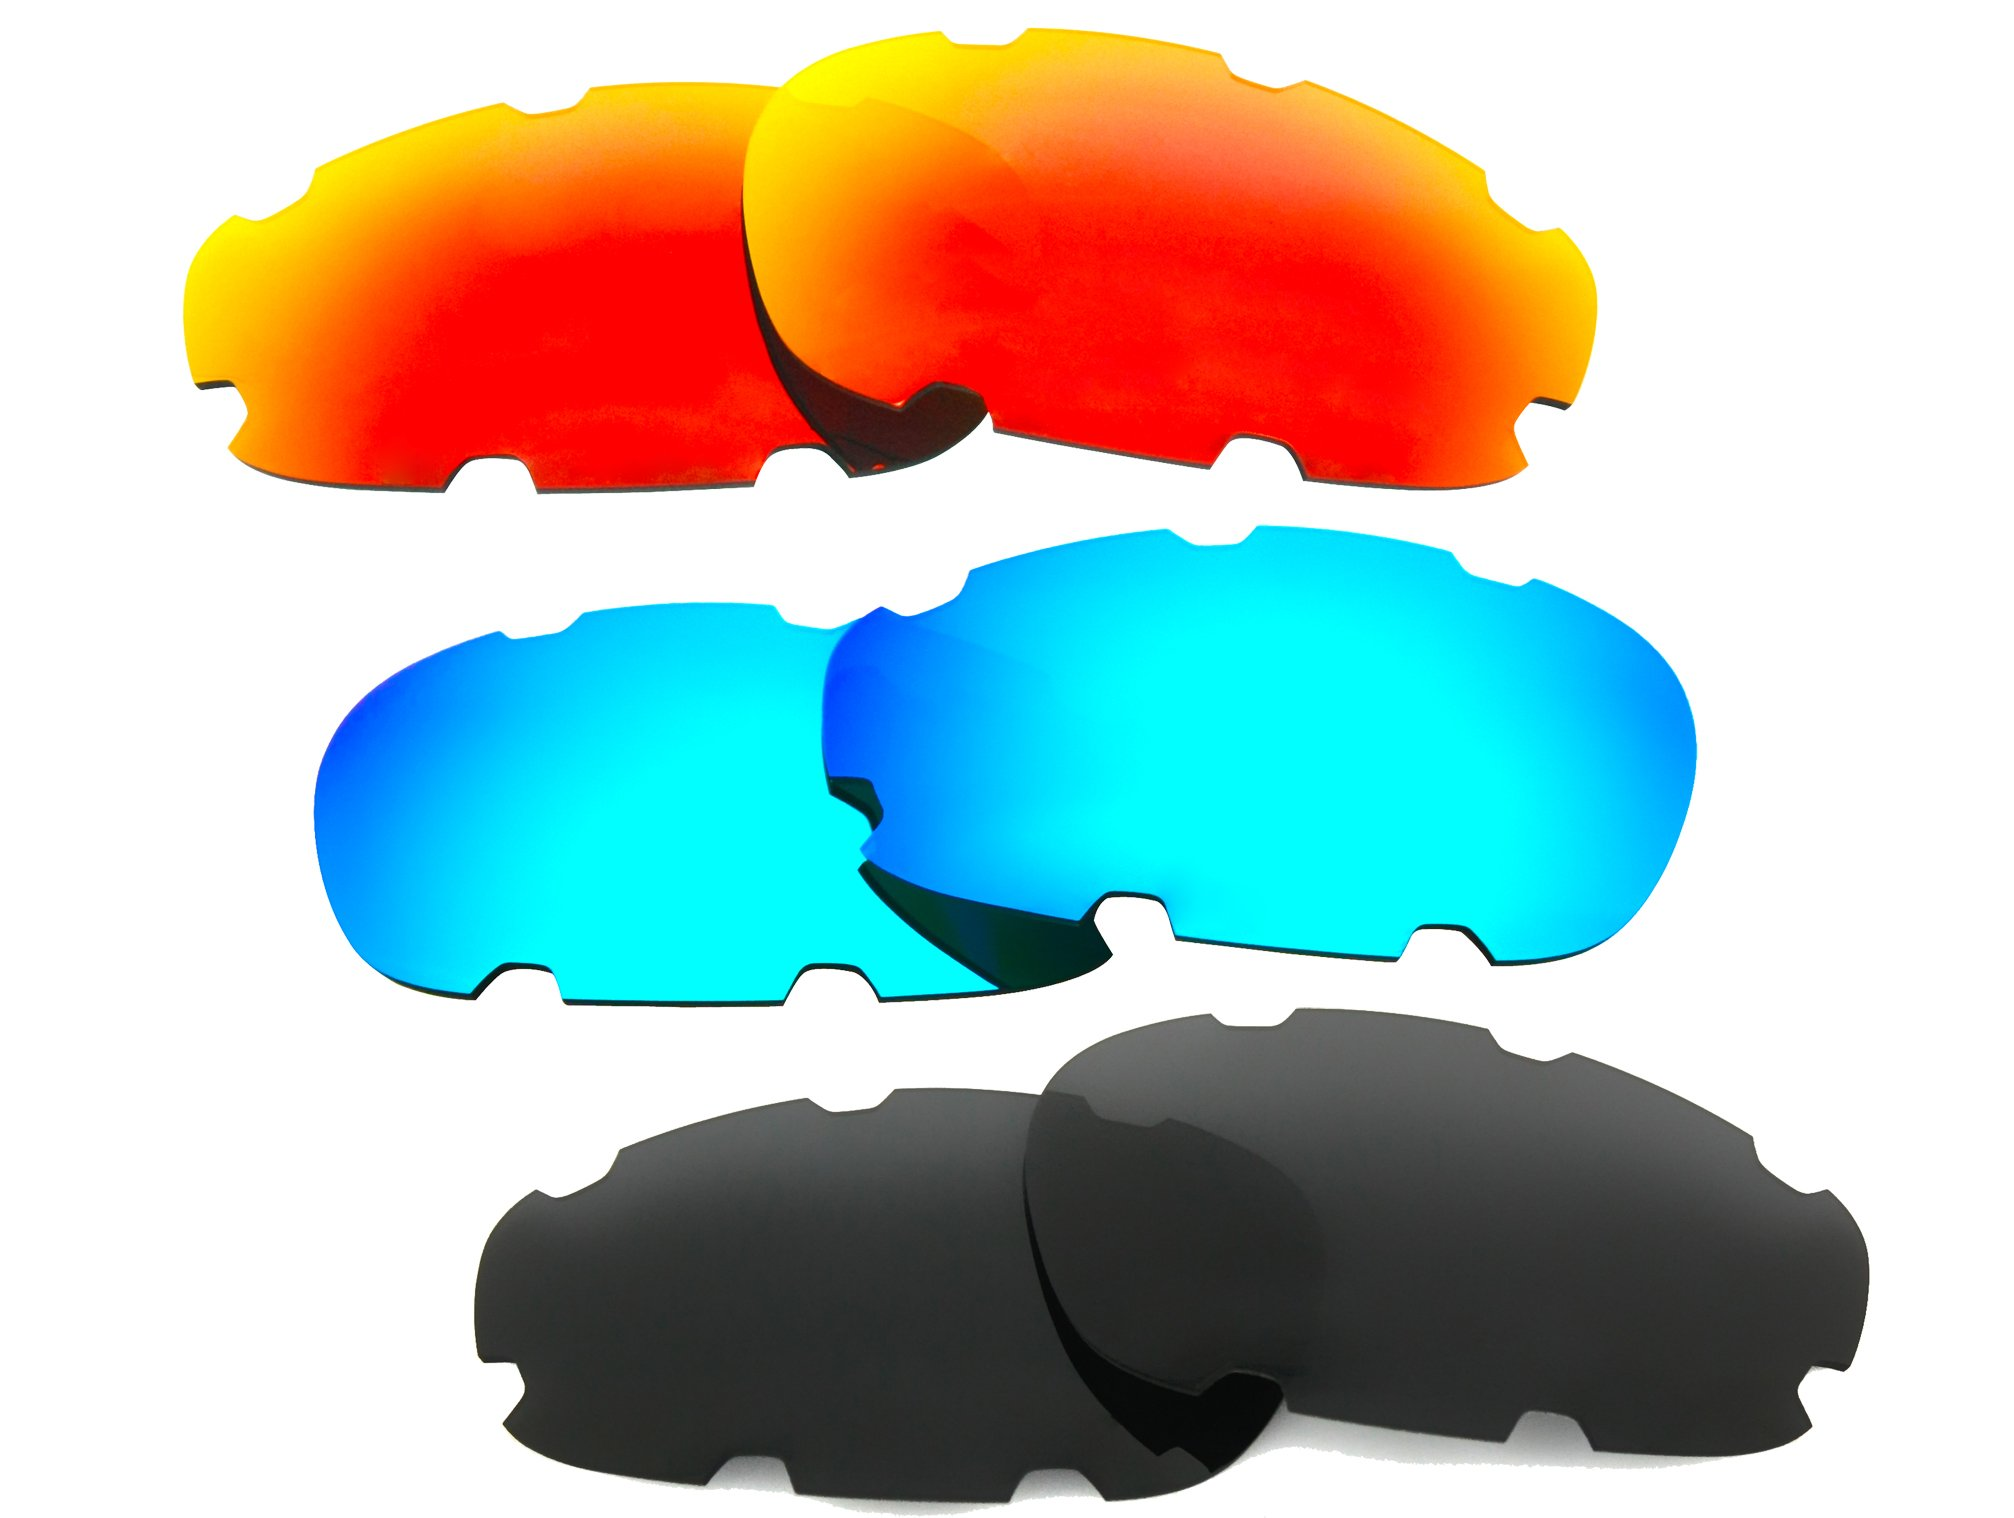 3 Pairs Polarized Replacement Vented Sunglasses Lenses for Oakley Split Jacket with Excellent UV Protection